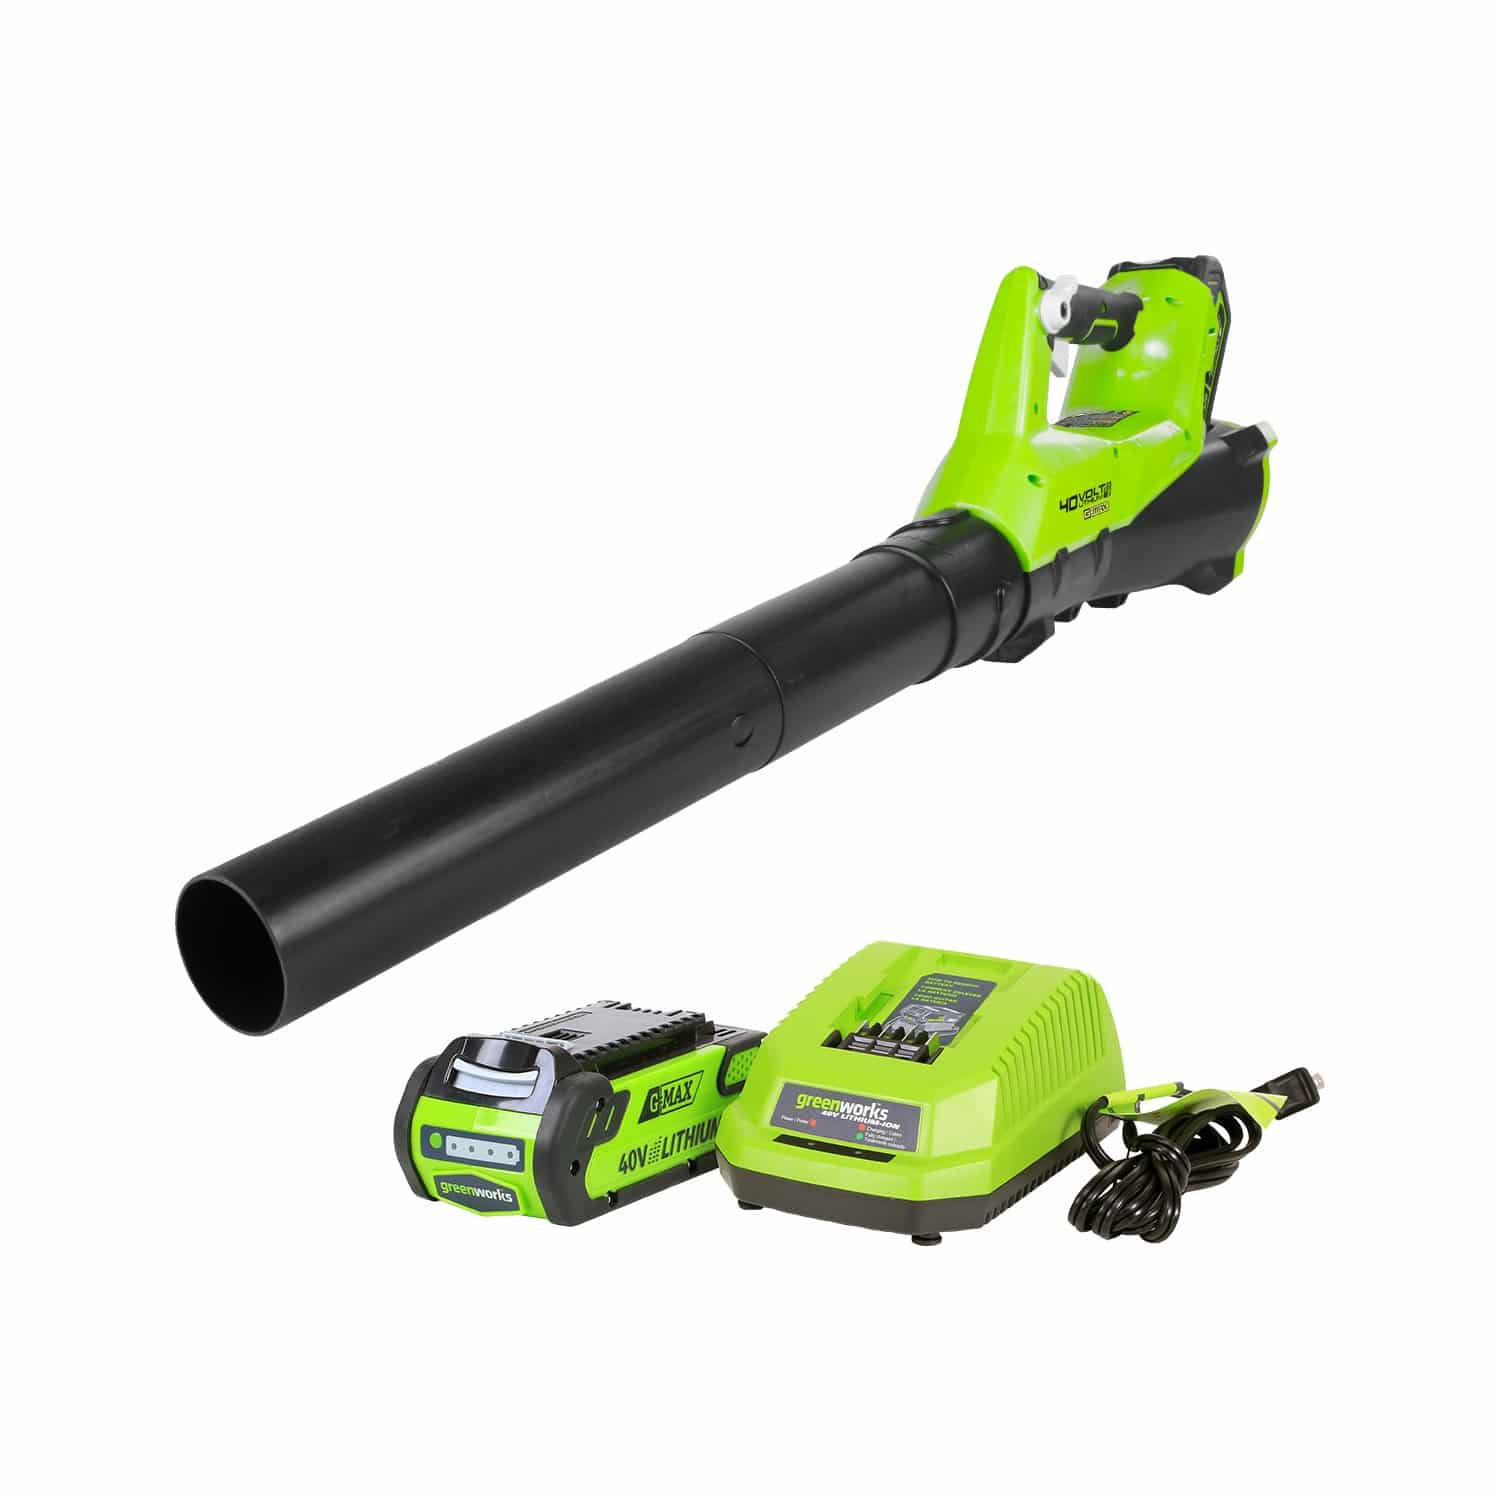 Green works 40V Electric Leaf Blower